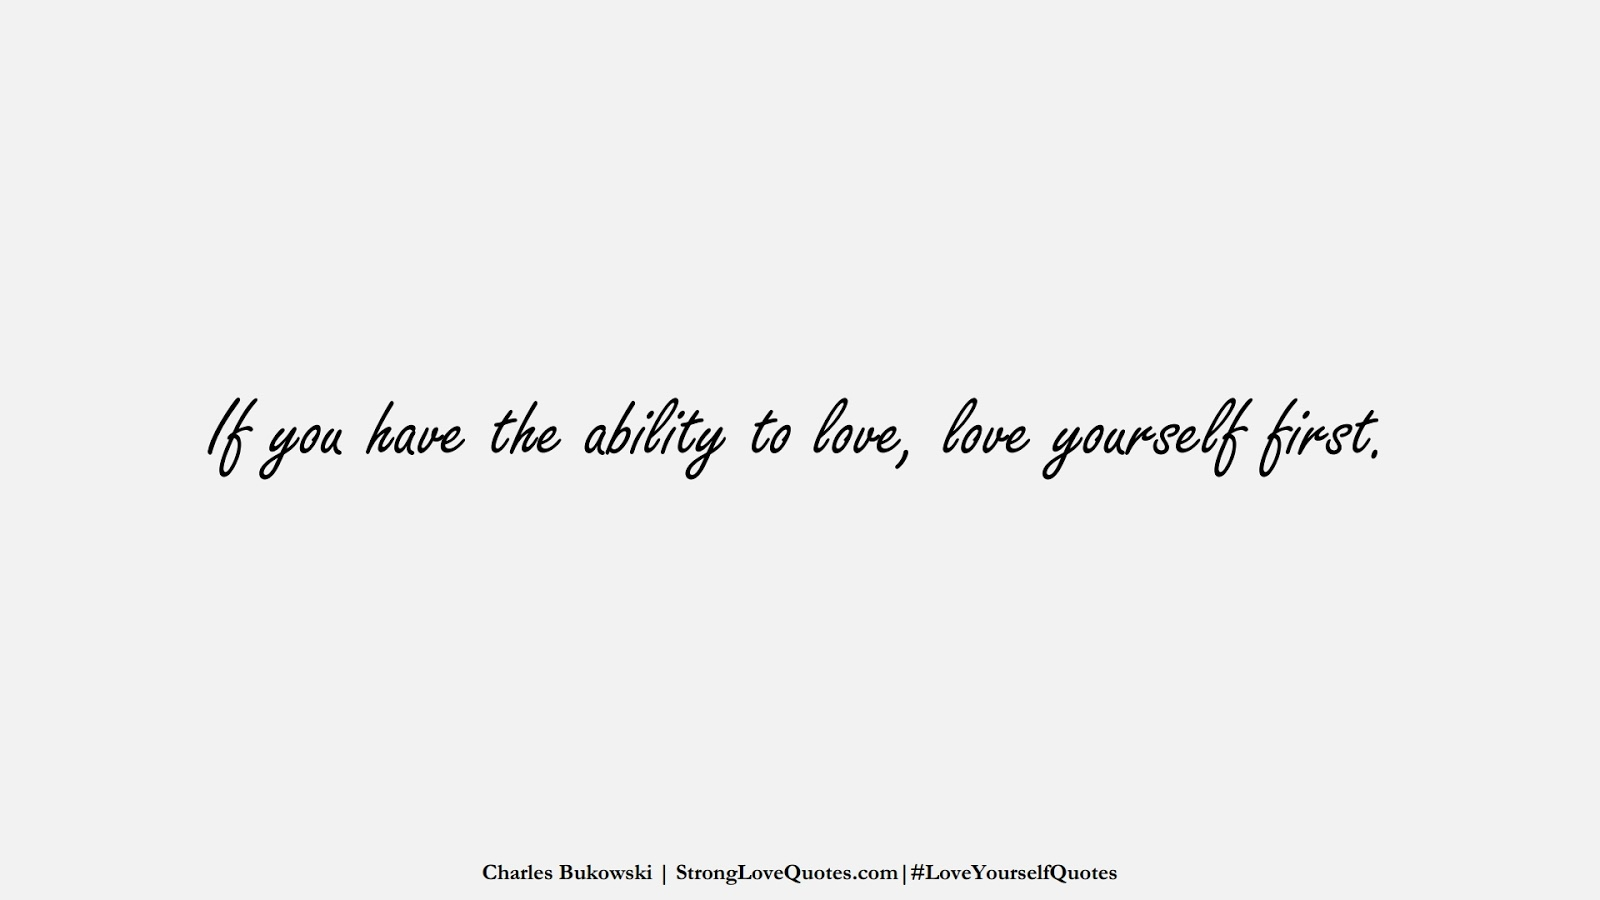 If you have the ability to love, love yourself first. (Charles Bukowski);  #LoveYourselfQuotes